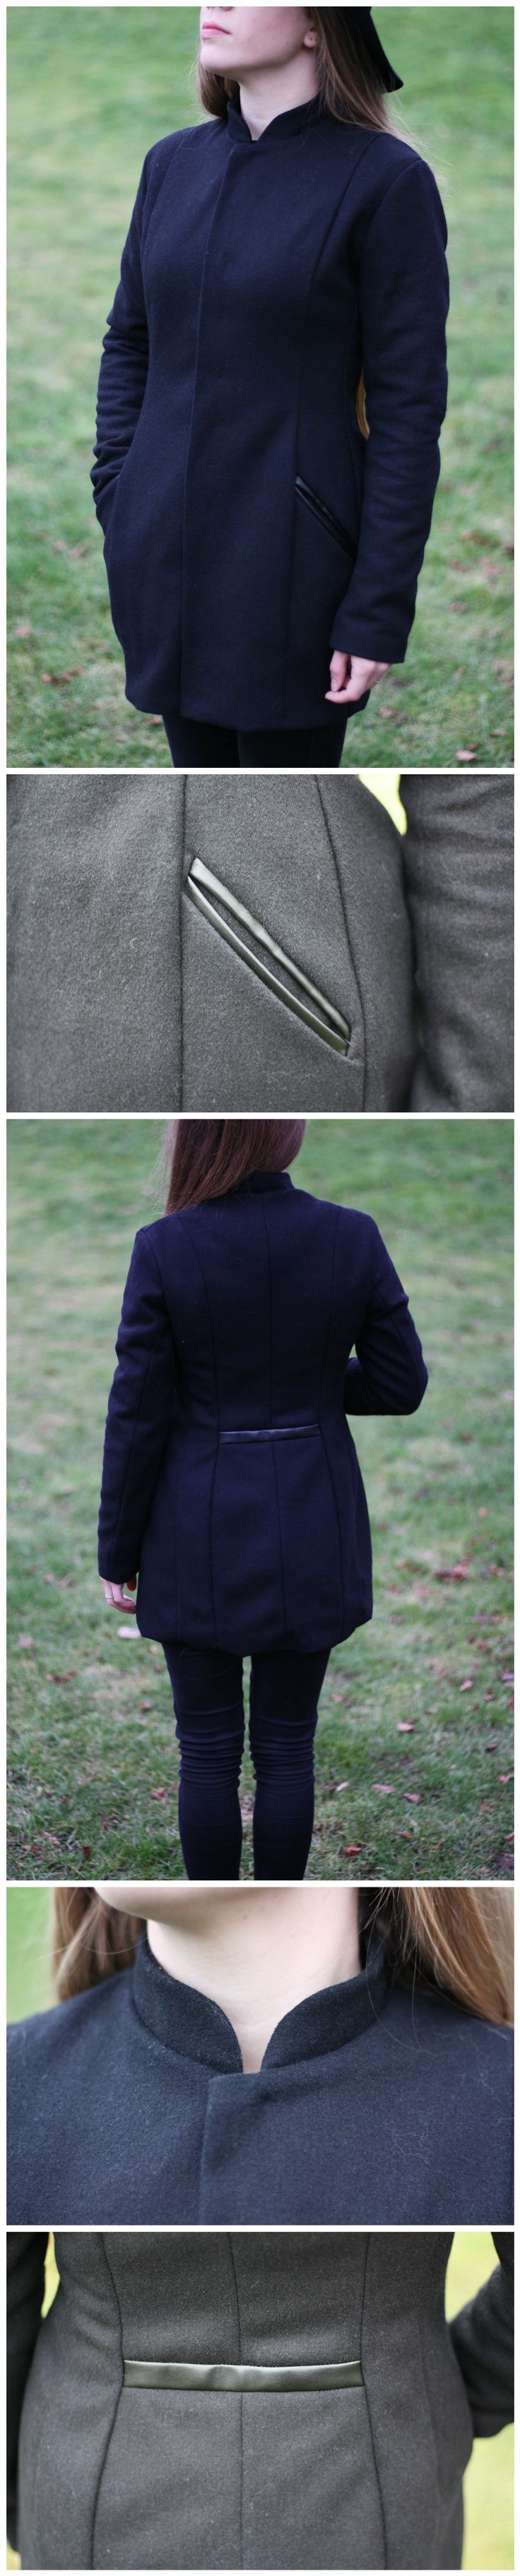 Black Wool Coat with Leather Details